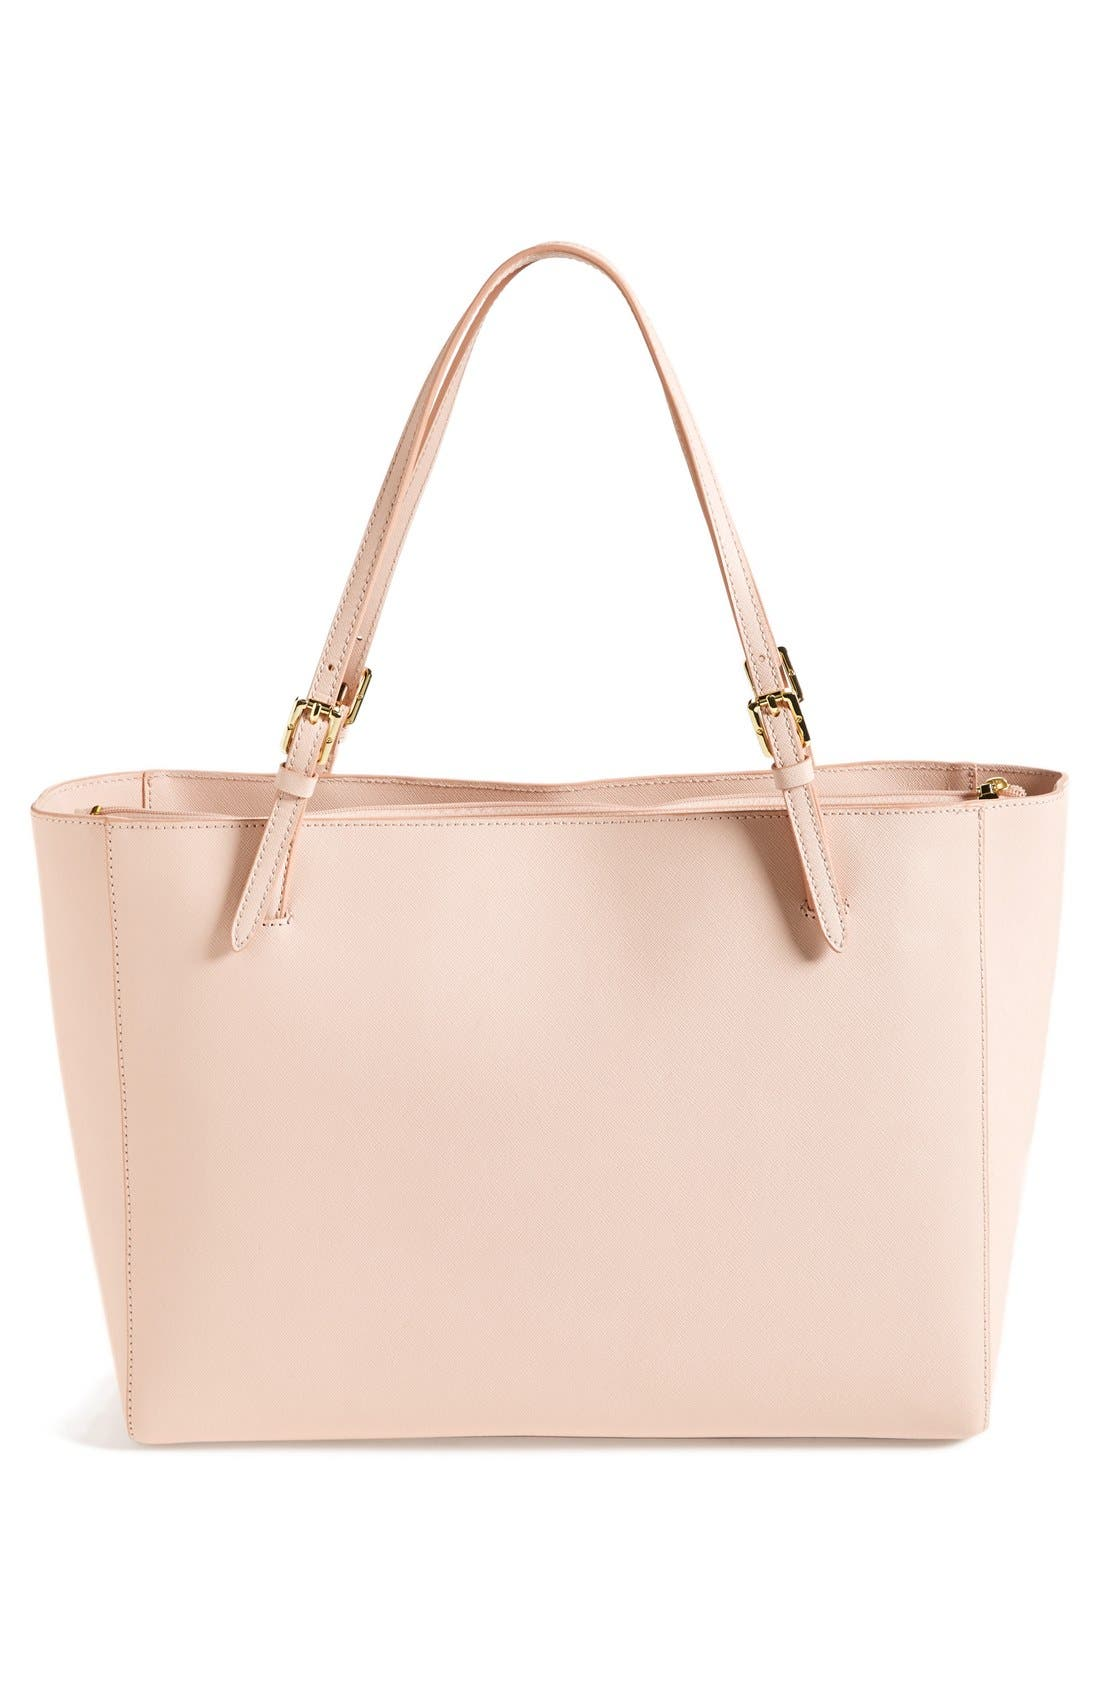 Alternate Image 3  - Tory Burch 'York' Buckle Tote